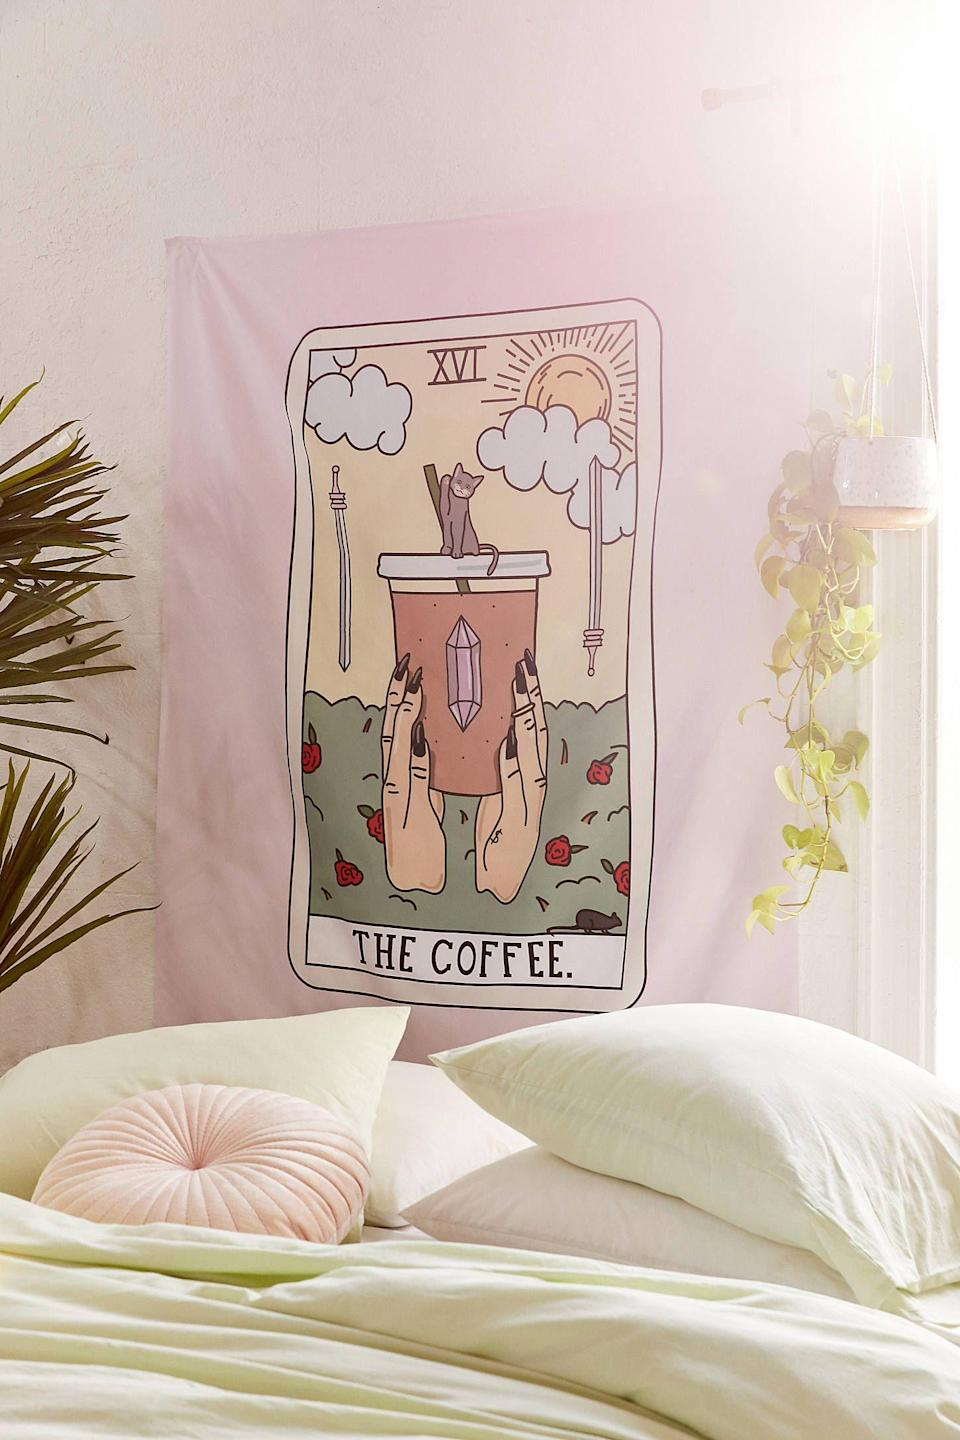 """<p><strong>Deny Designs</strong></p><p>urbanoutfitters.com</p><p><strong>$49.00</strong></p><p><a href=""""https://go.redirectingat.com?id=74968X1596630&url=https%3A%2F%2Fwww.urbanoutfitters.com%2Fshop%2Fsage-pizza-for-deny-coffee-reading-tapestry&sref=https%3A%2F%2Fwww.delish.com%2Fholiday-recipes%2Fchristmas%2Fg3132%2Fgift-coffee-obsessed%2F"""" rel=""""nofollow noopener"""" target=""""_blank"""" data-ylk=""""slk:BUY NOW"""" class=""""link rapid-noclick-resp"""">BUY NOW</a></p><p>We see a pipin' hot cup of coffee in your future... </p>"""